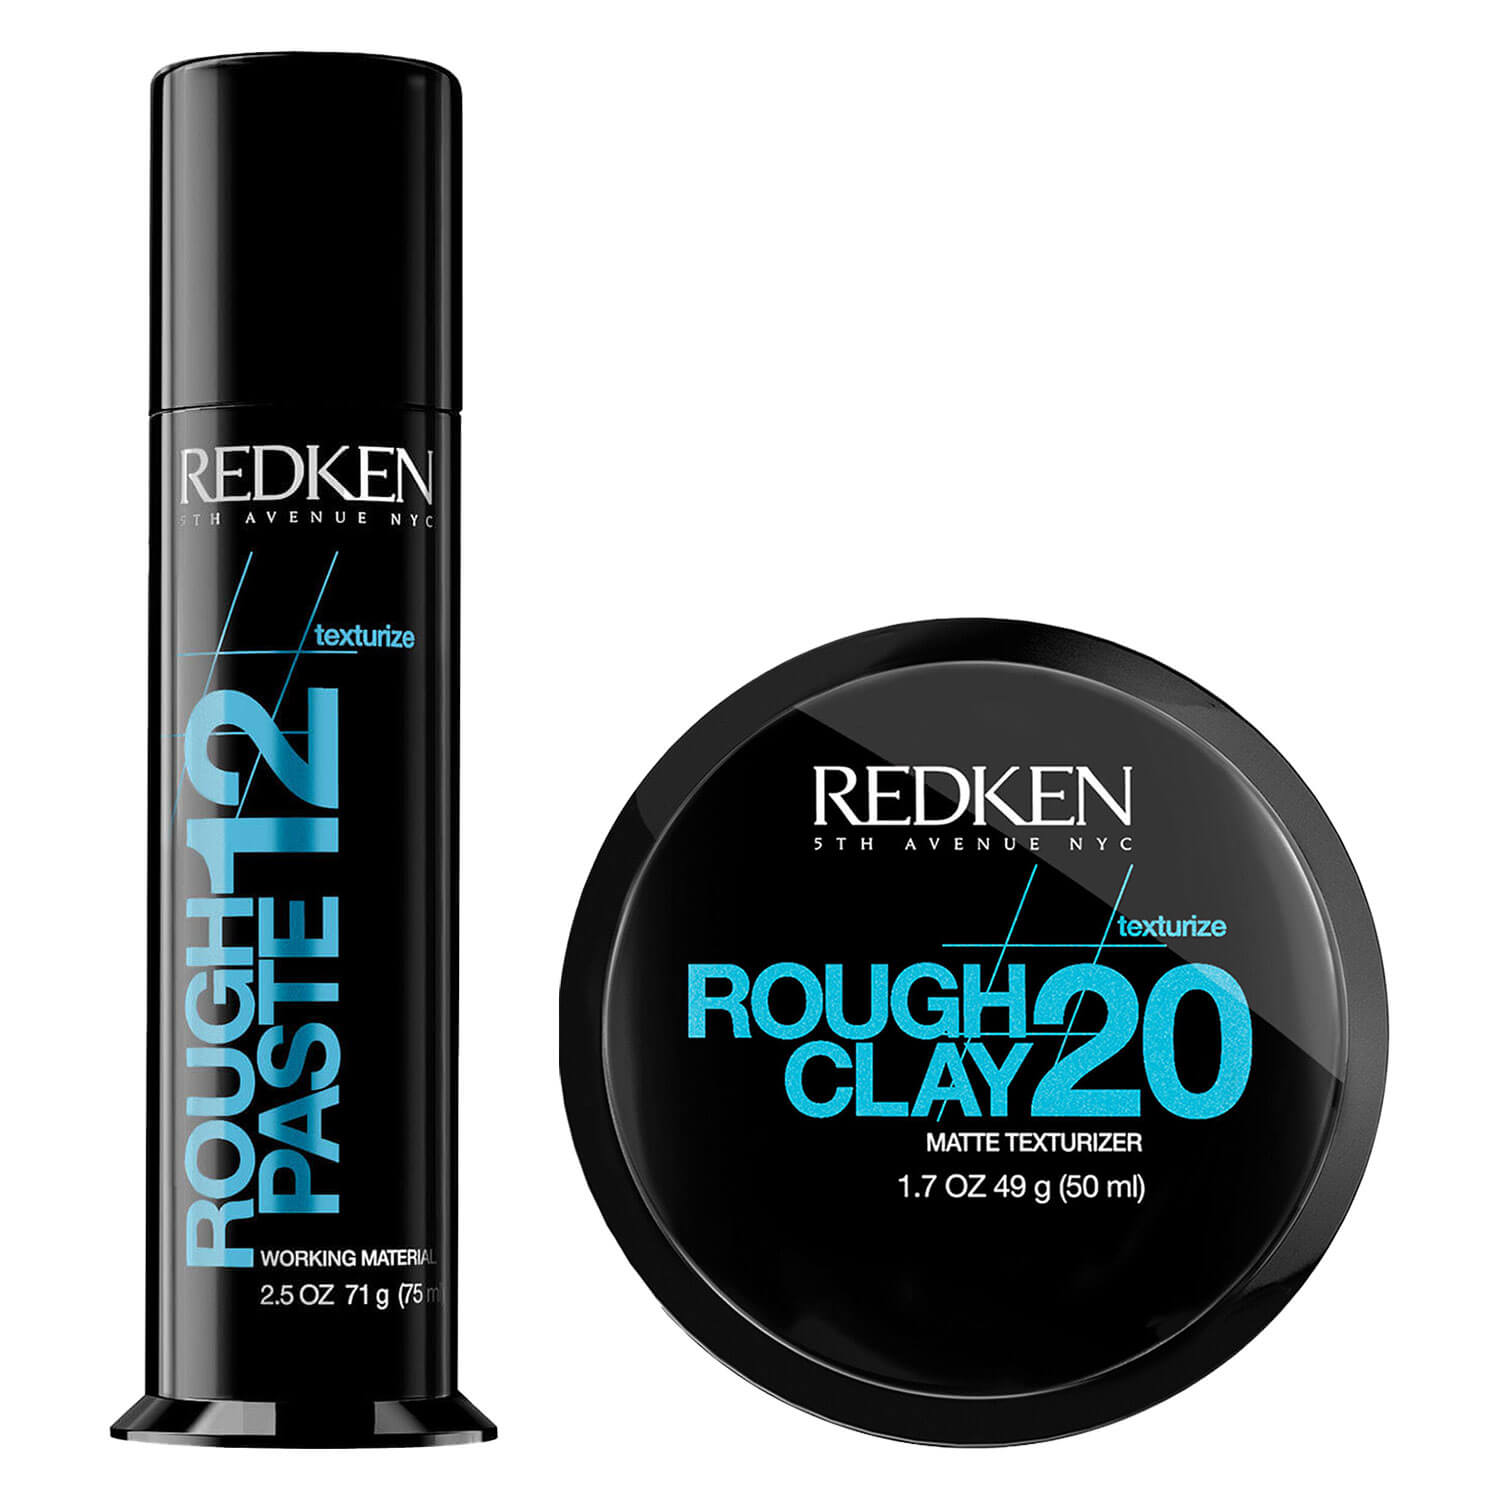 Redken Texture - Rough Paste 12 + Rough Clay 20 Special